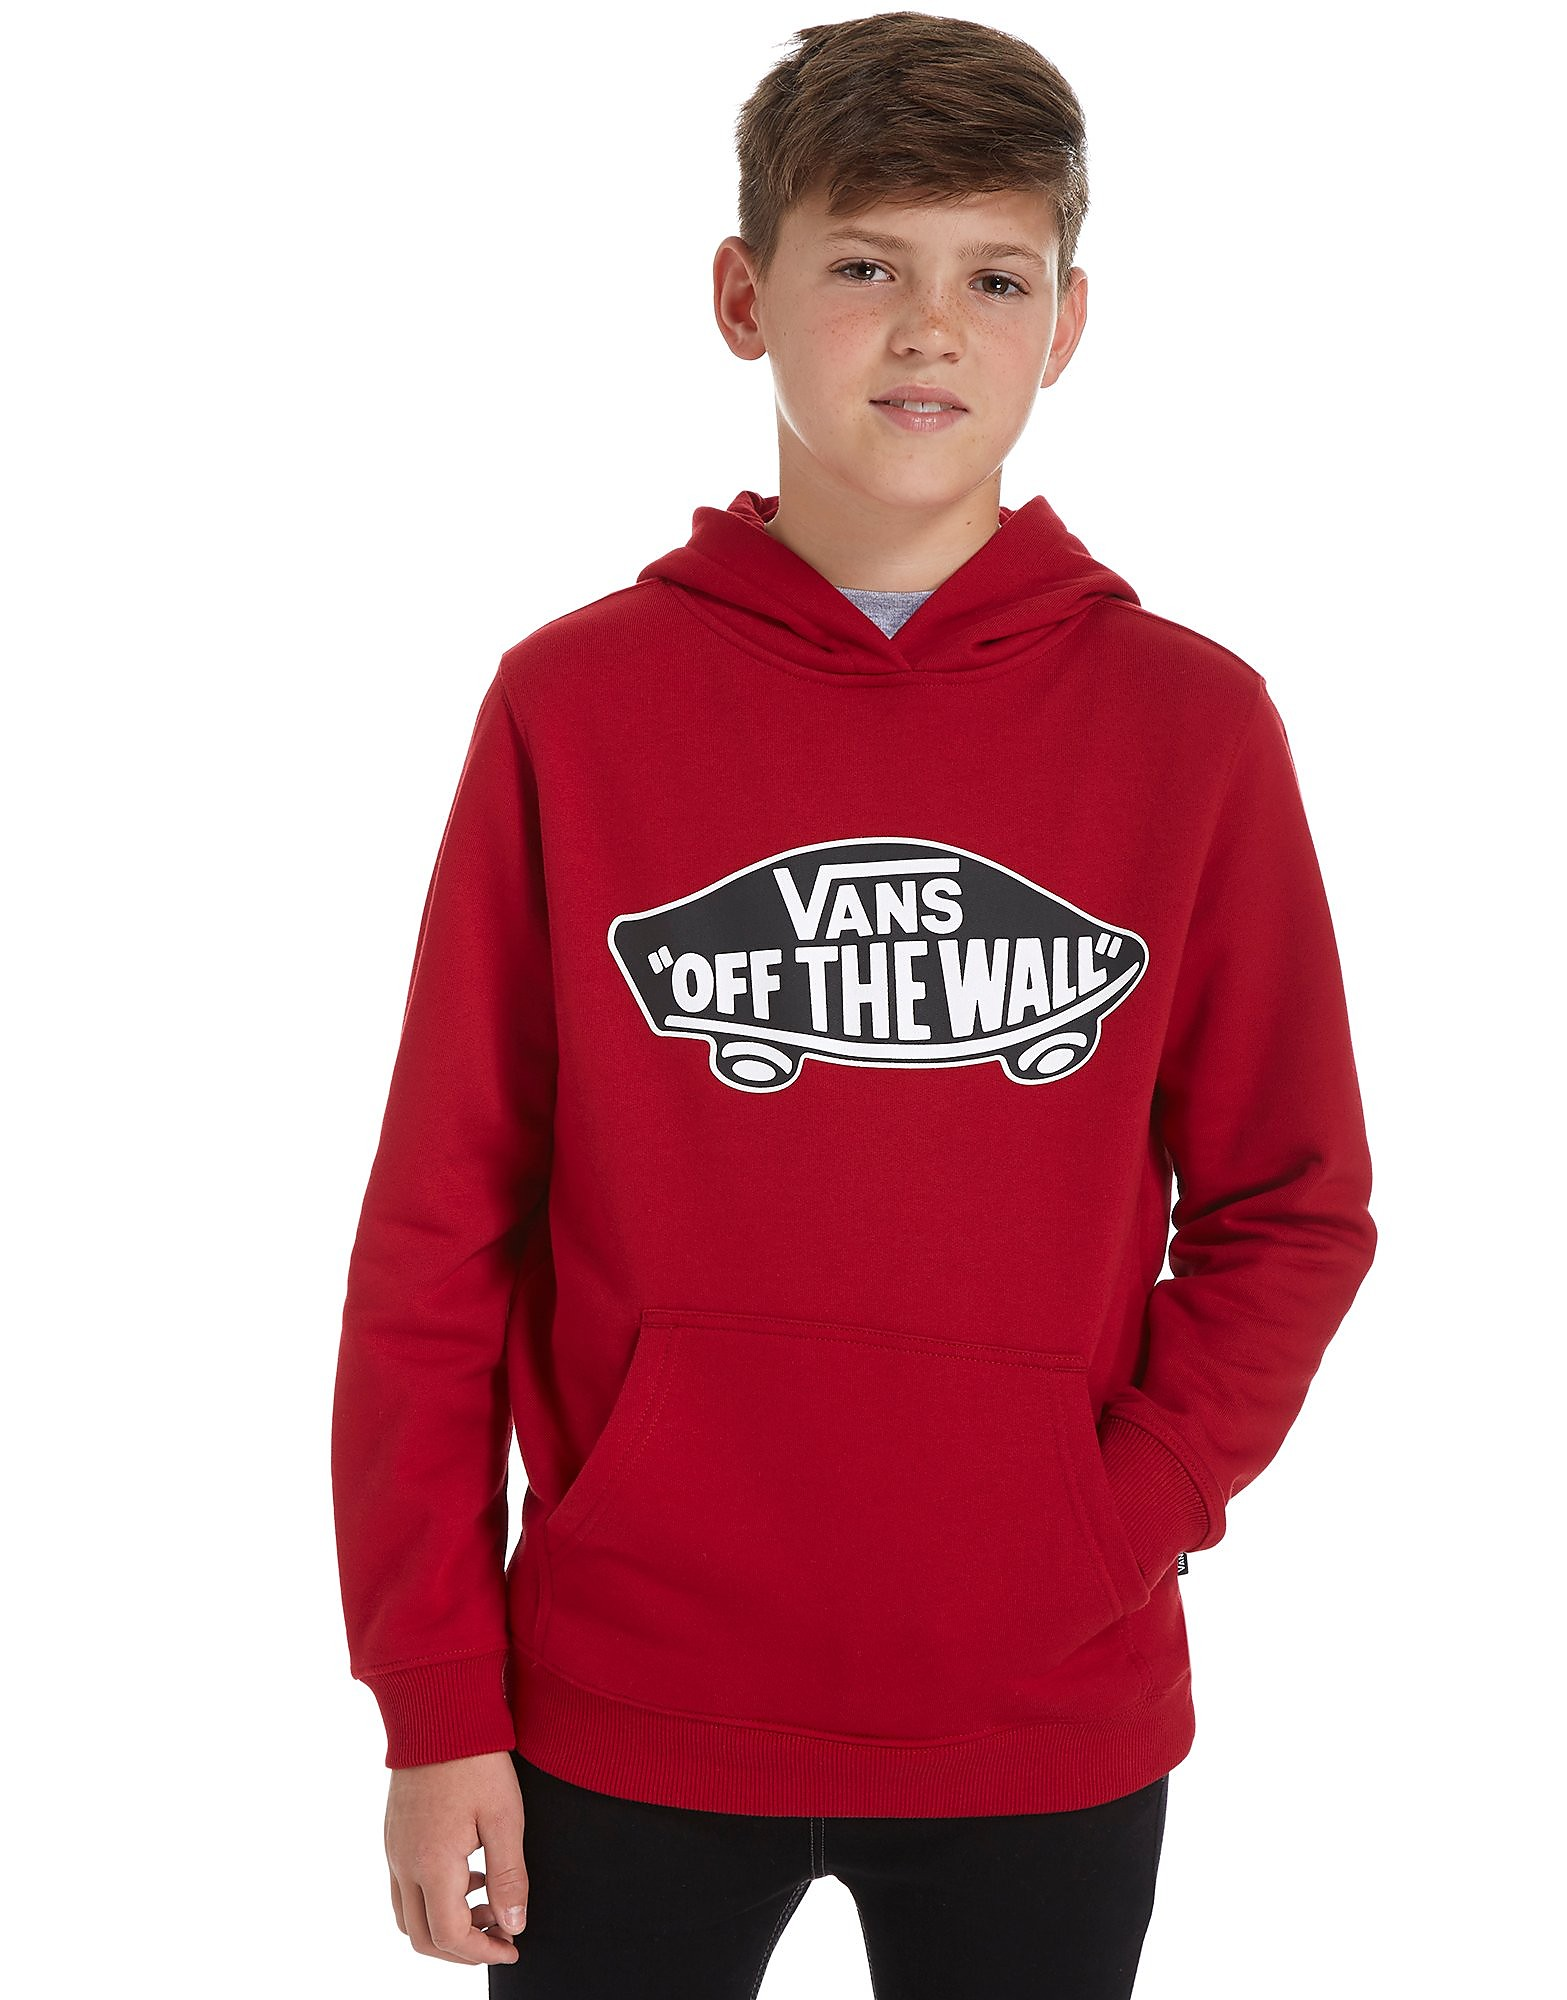 Vans Off The Wall Hoody Junior